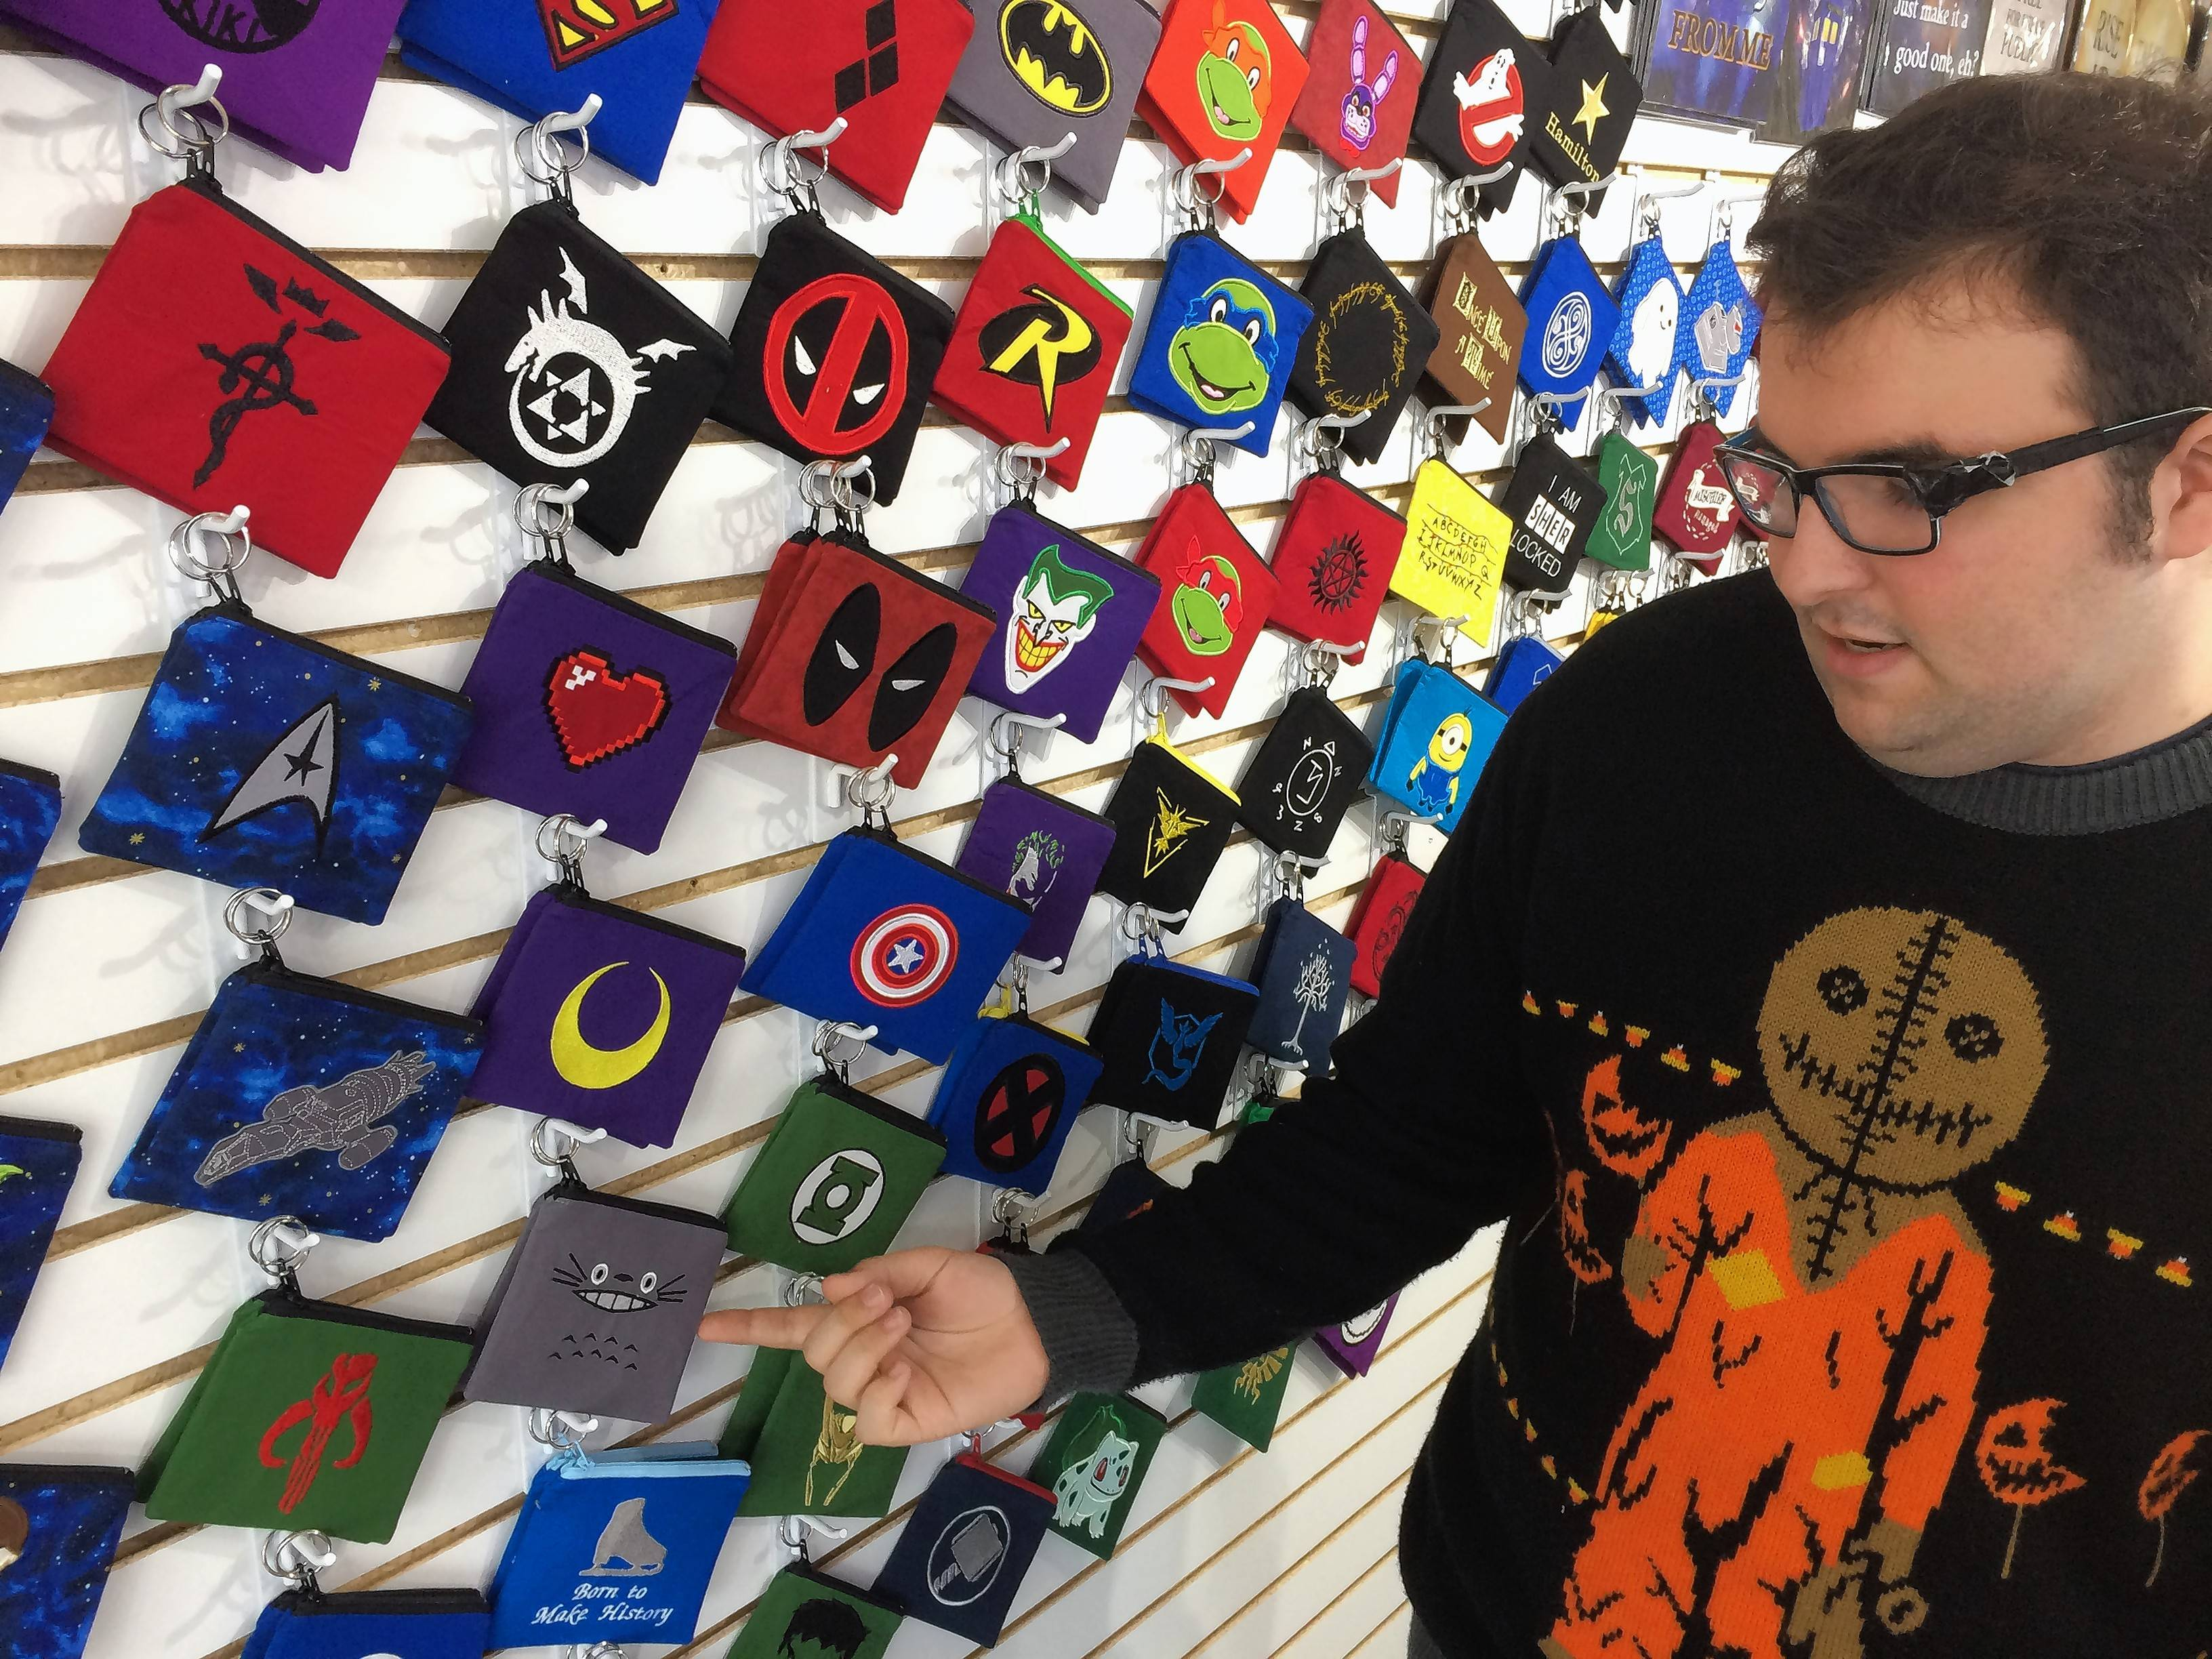 Fandom-themed shop to open in downtown Wauconda